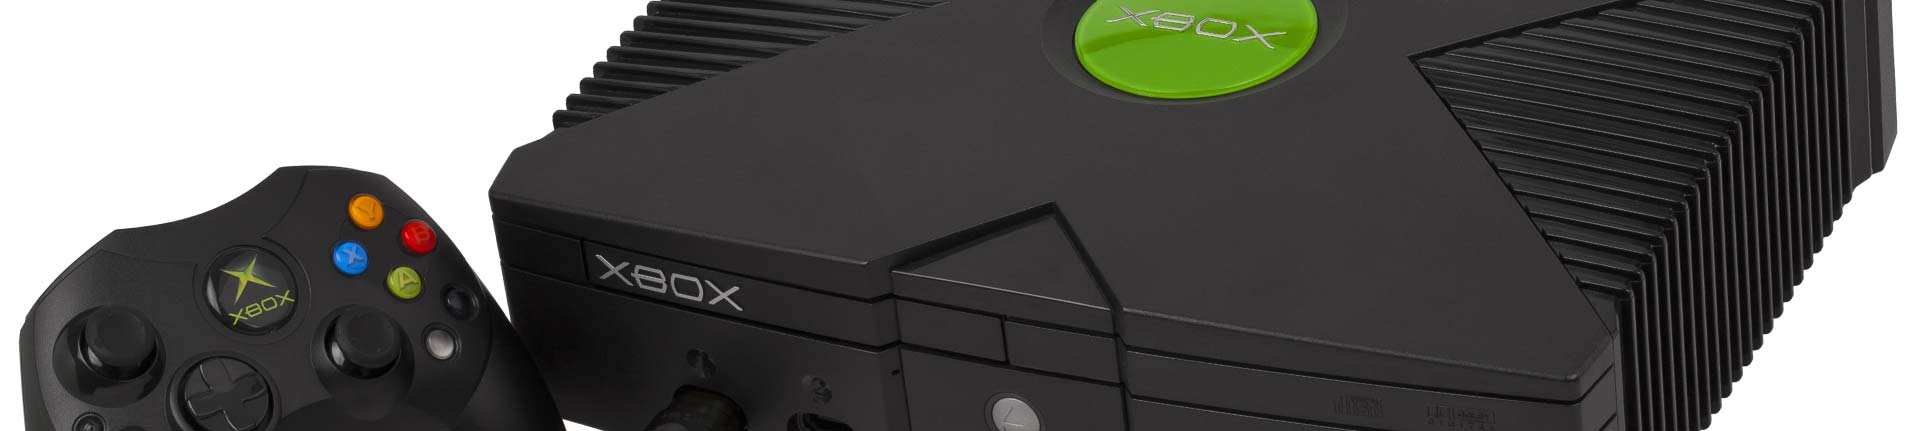 How the Dreamcast almost led to a completely different Xbox experience to the one we know today